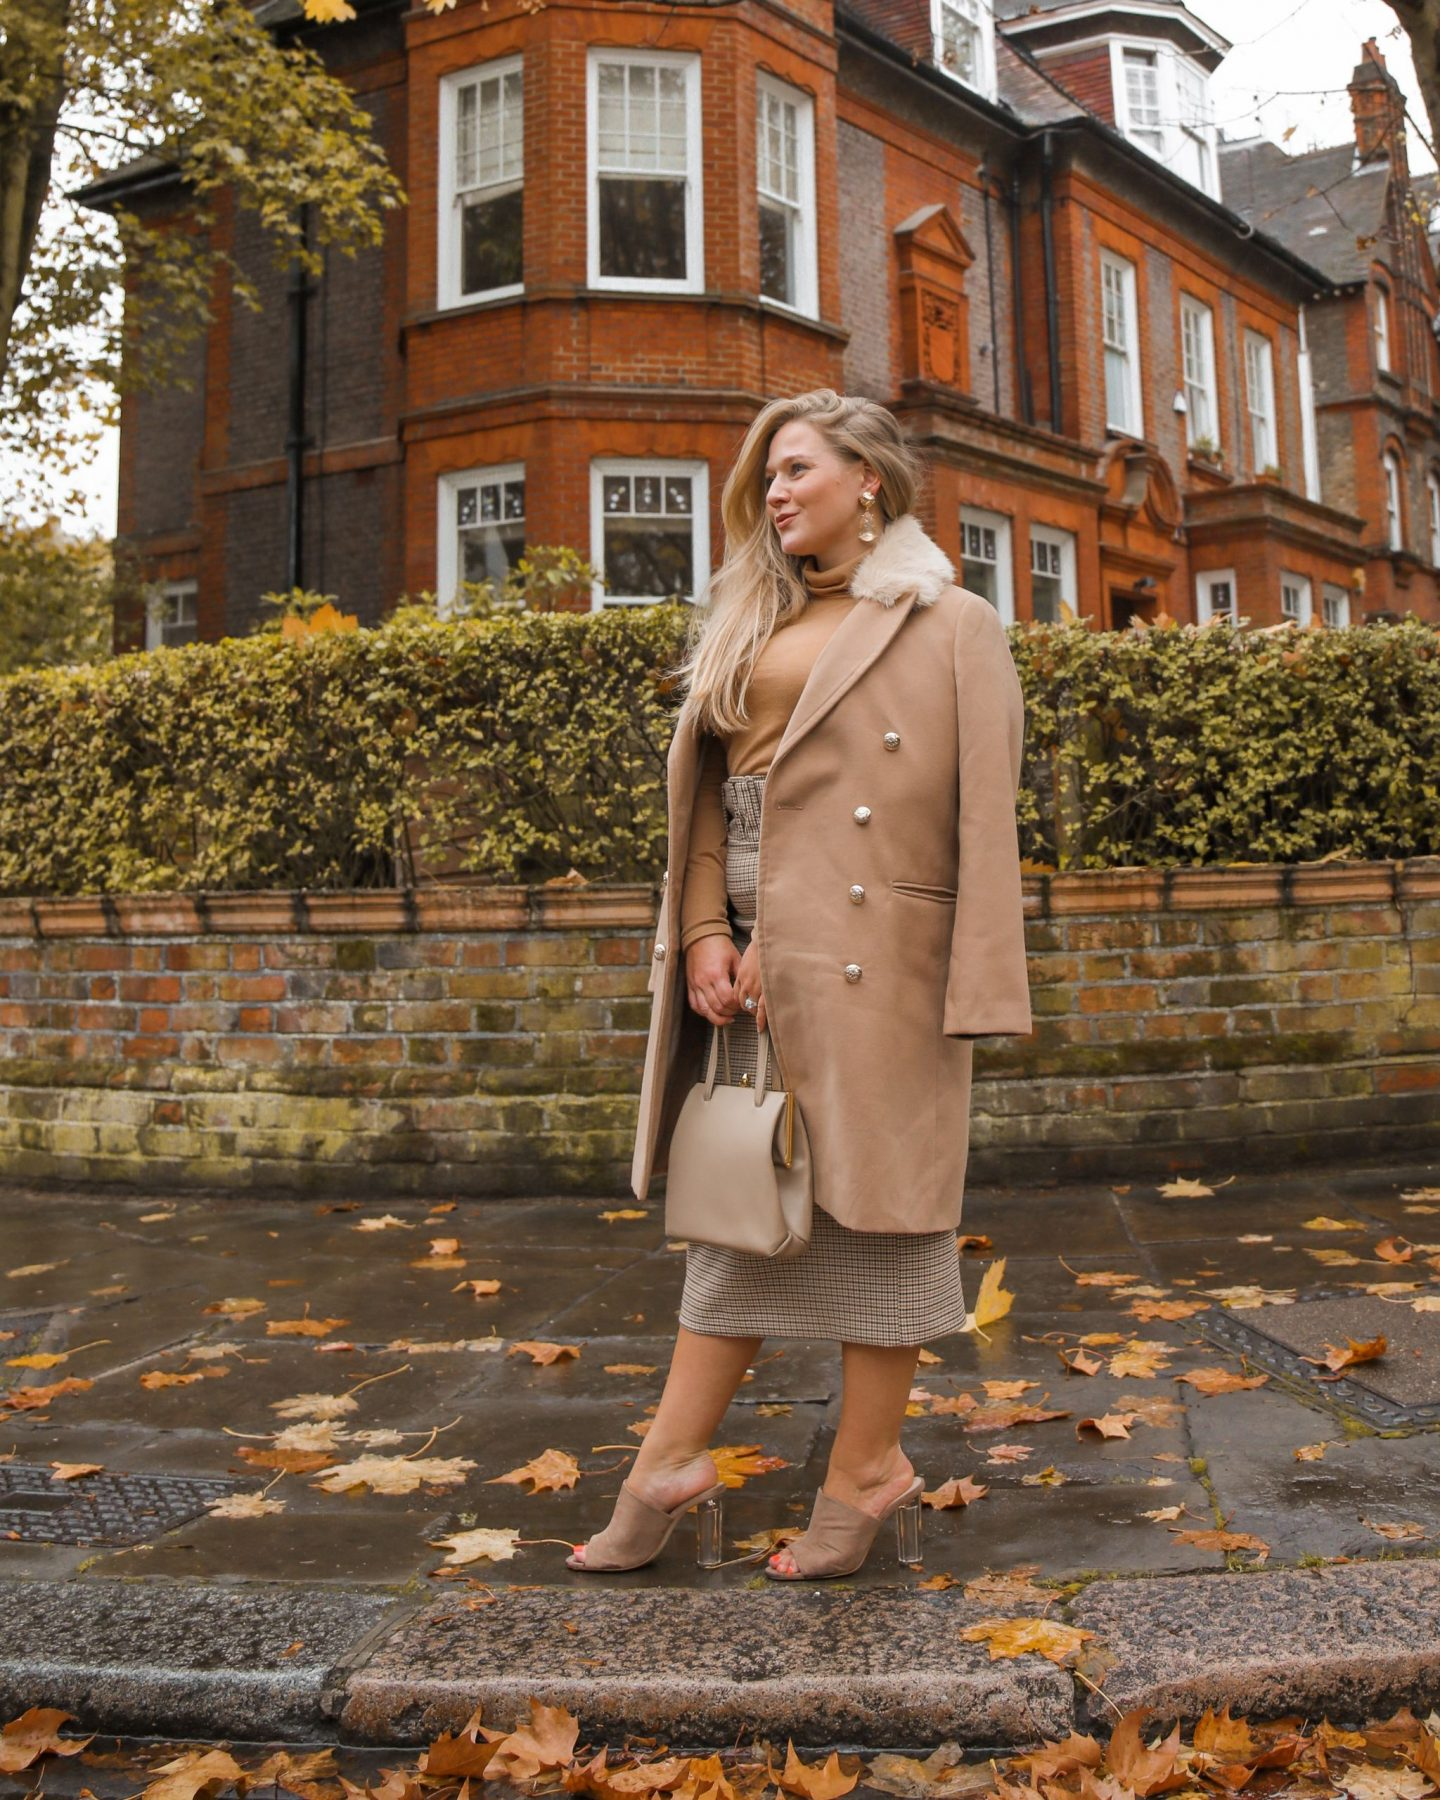 Katie Heath, Kalanchoe wearing camel and check pencil skirt